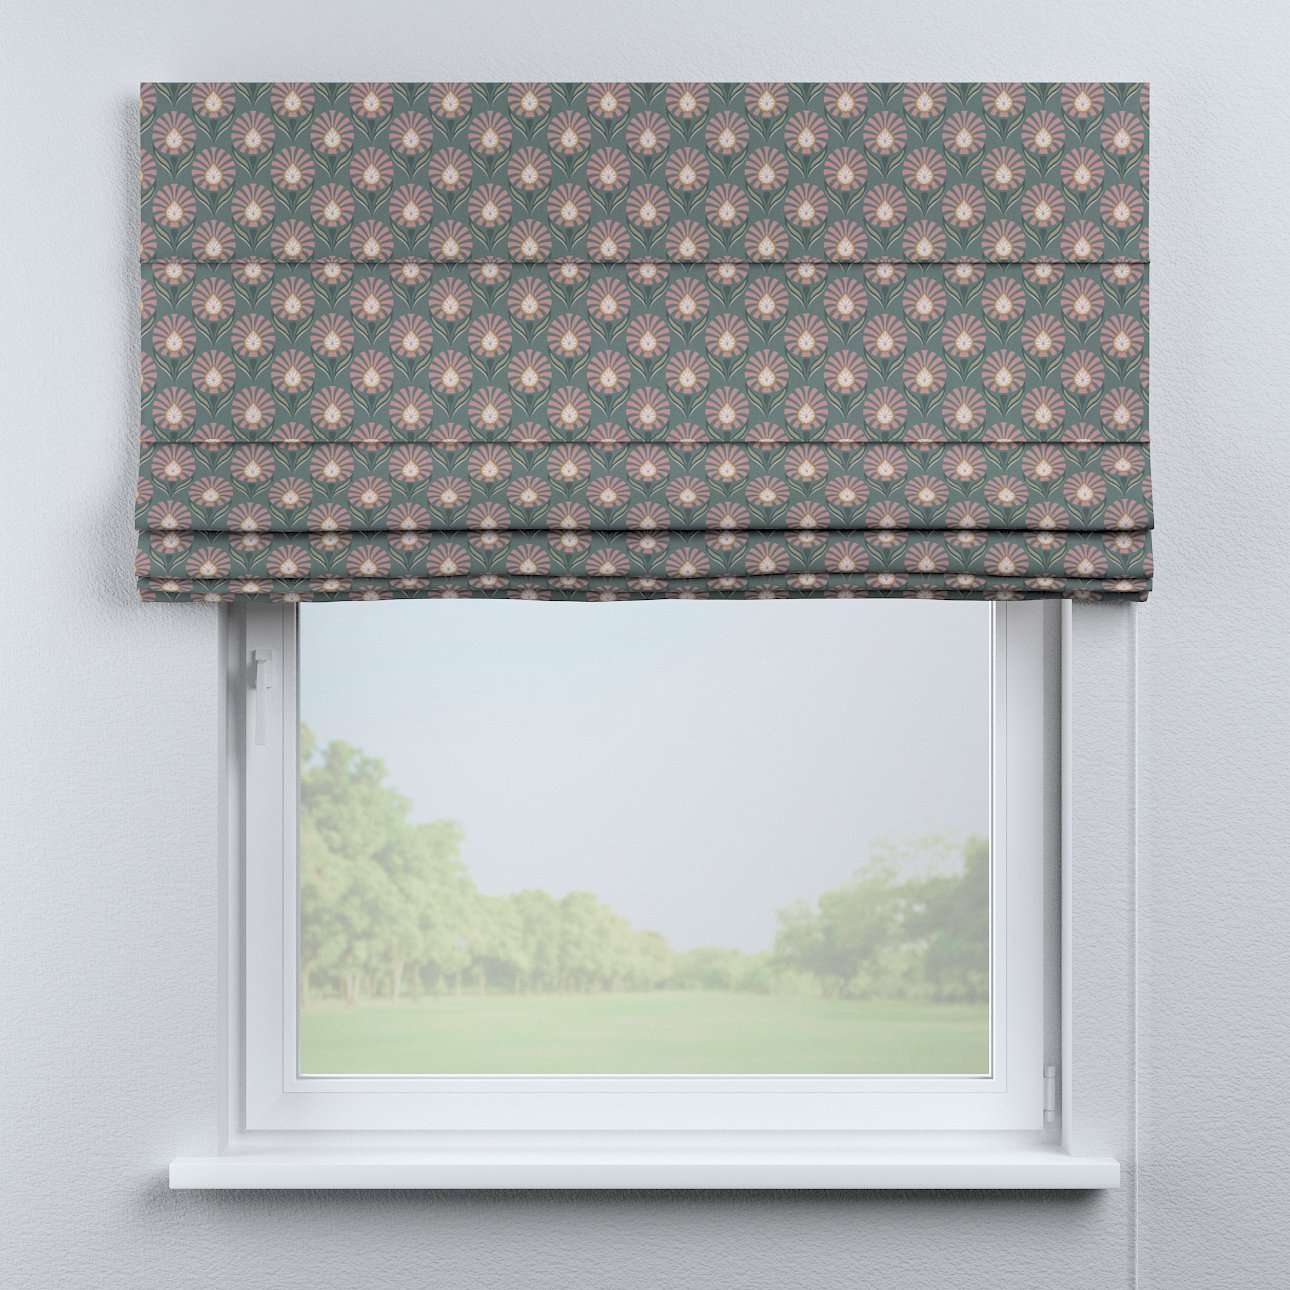 Capri roman blind in collection Gardenia, fabric: 142-17